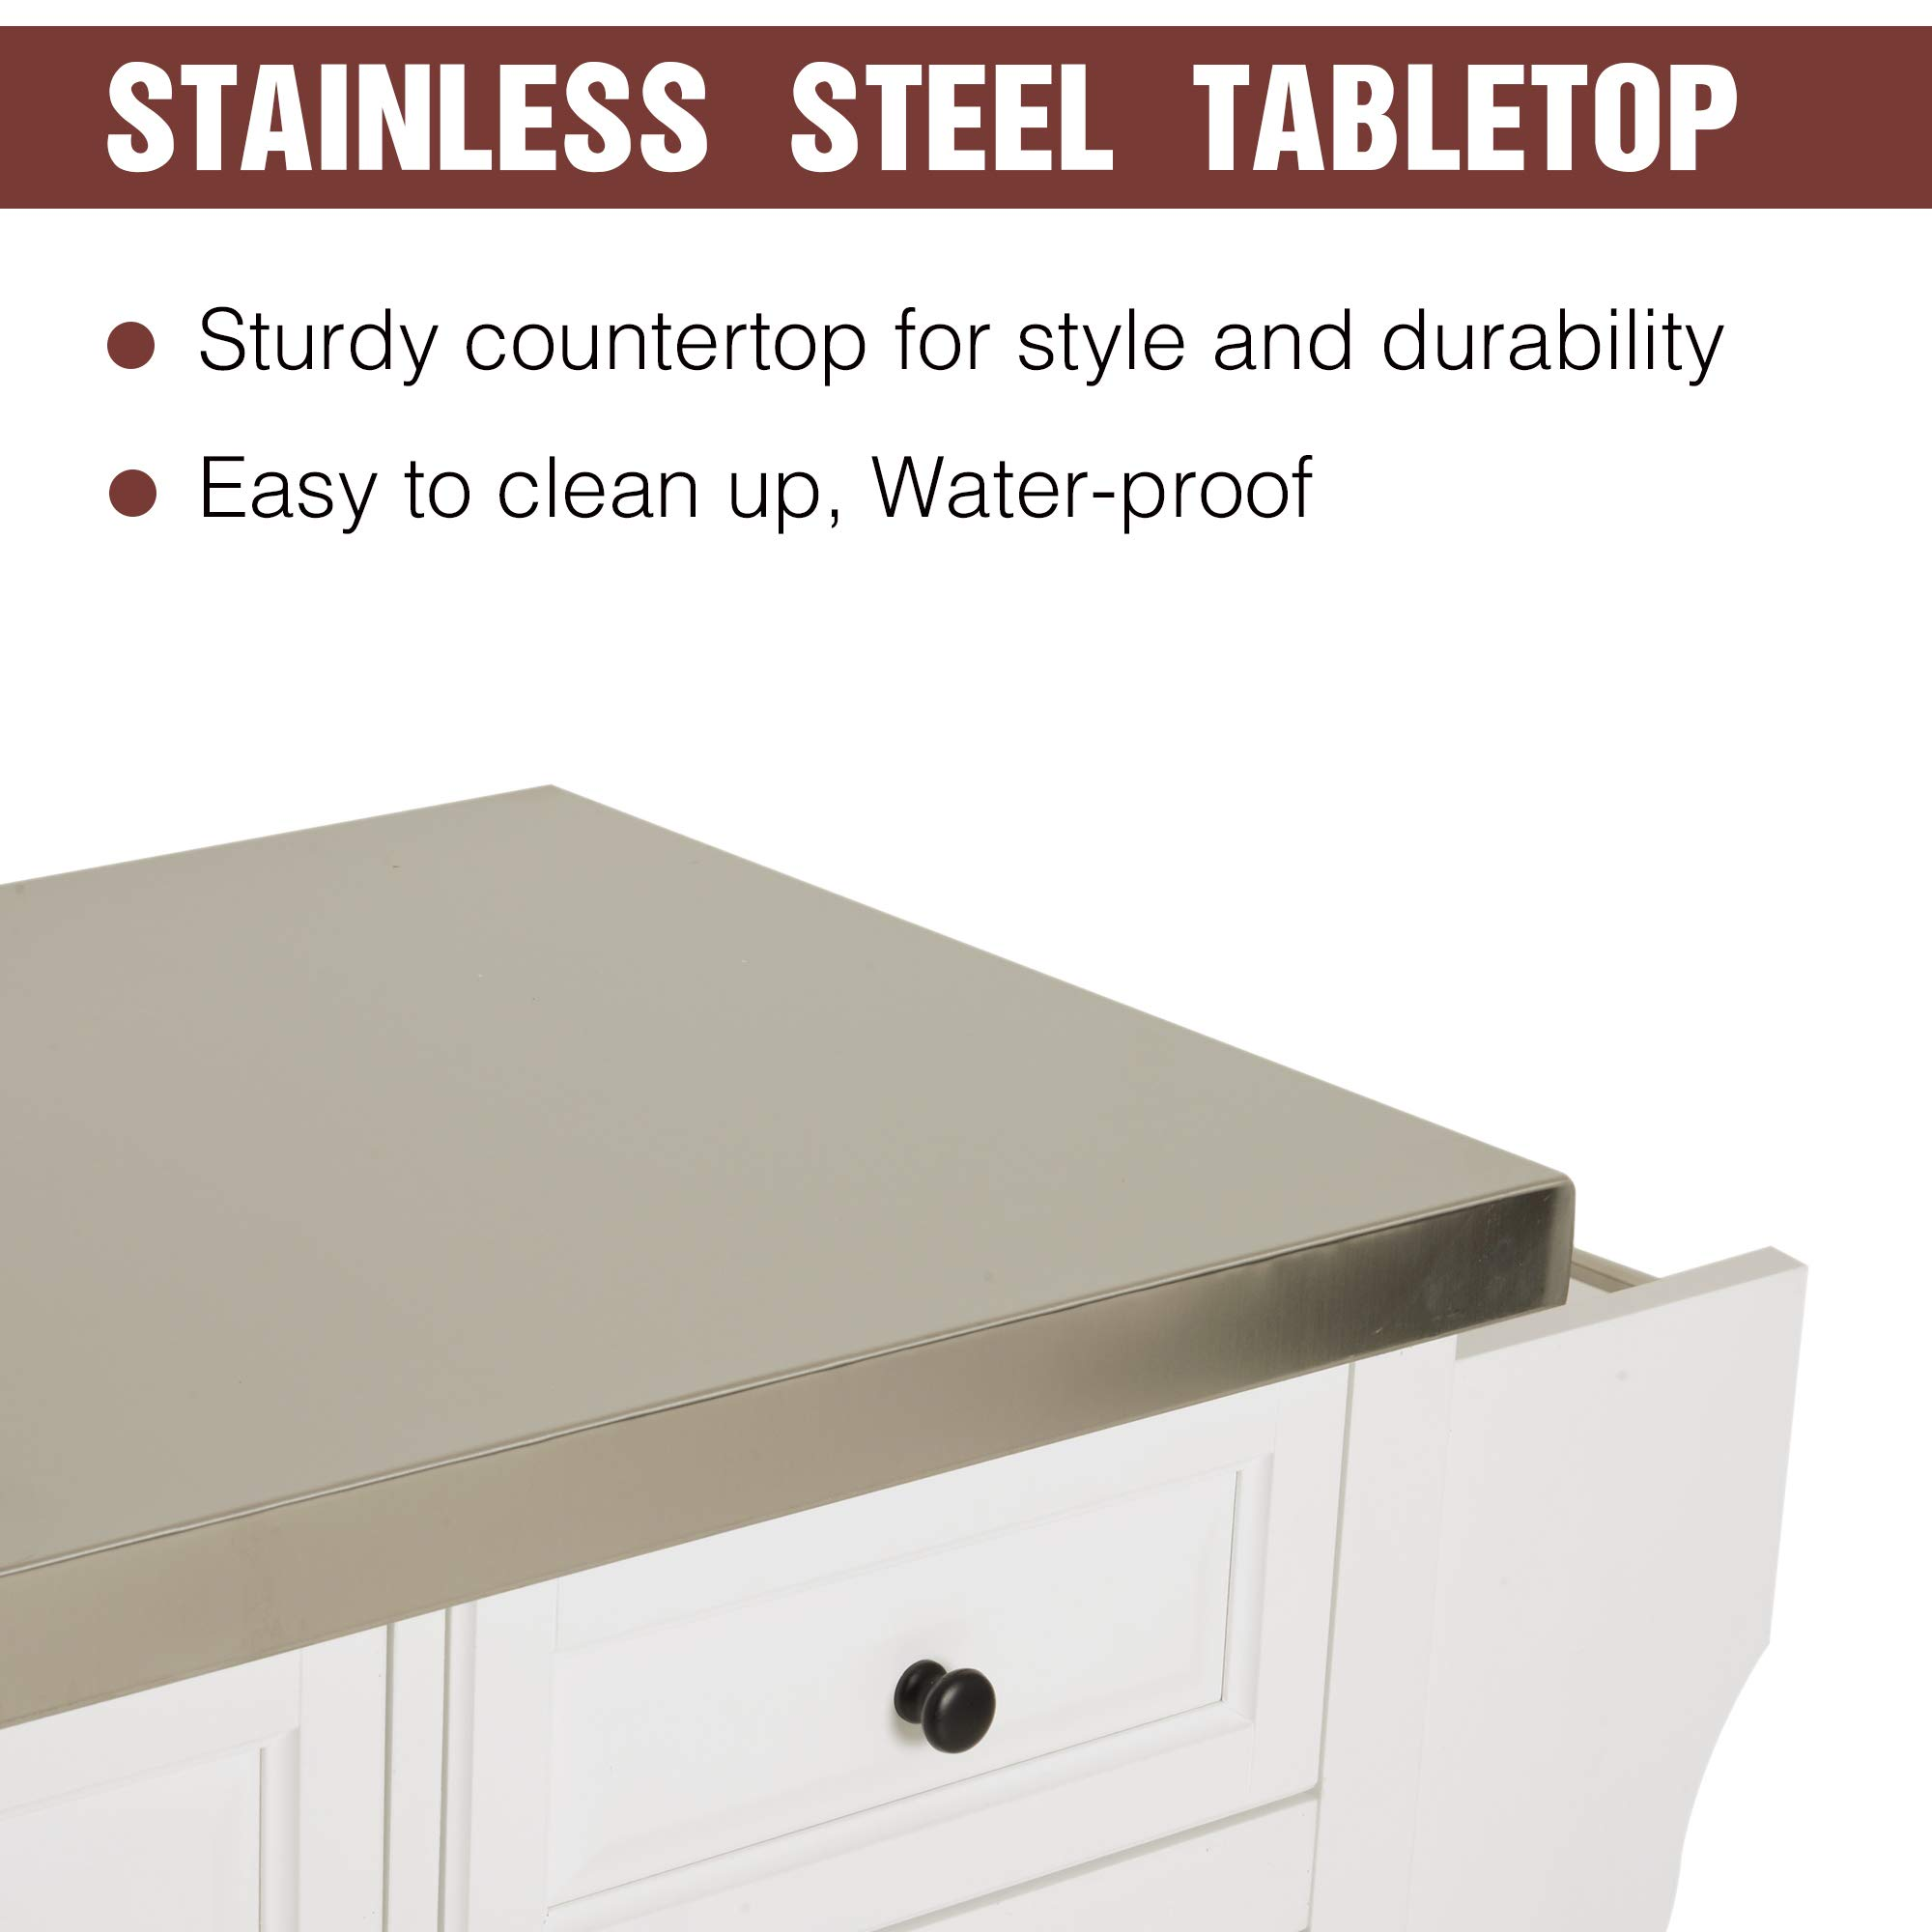 HOMCOM 51'' x 18'' x 36'' Pine Wood Stainless Steel Portable Multi-Storage Rolling Kitchen Island Cart with Wheels - White by HOMCOM (Image #5)